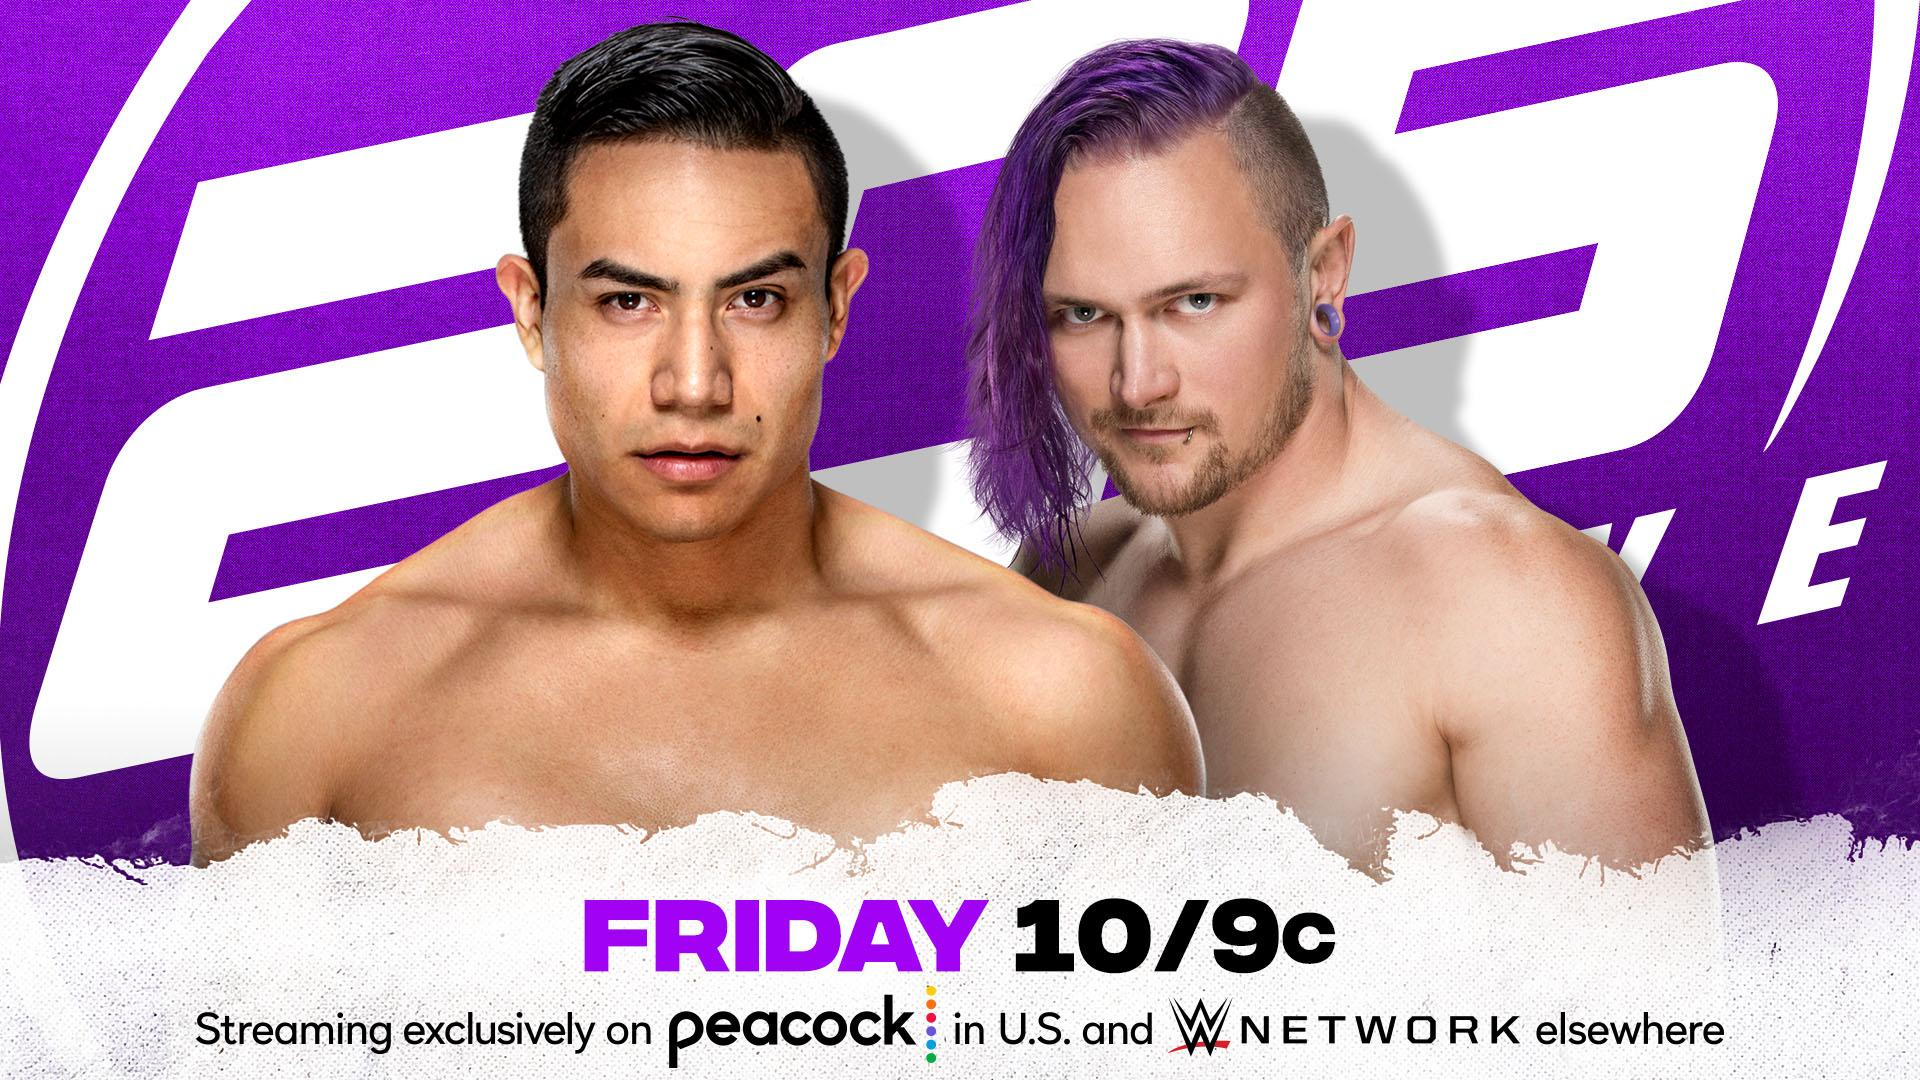 WWE 205 Live Results (7/23): Jake Atlas And Ari Sterling Square Off In The Main Event